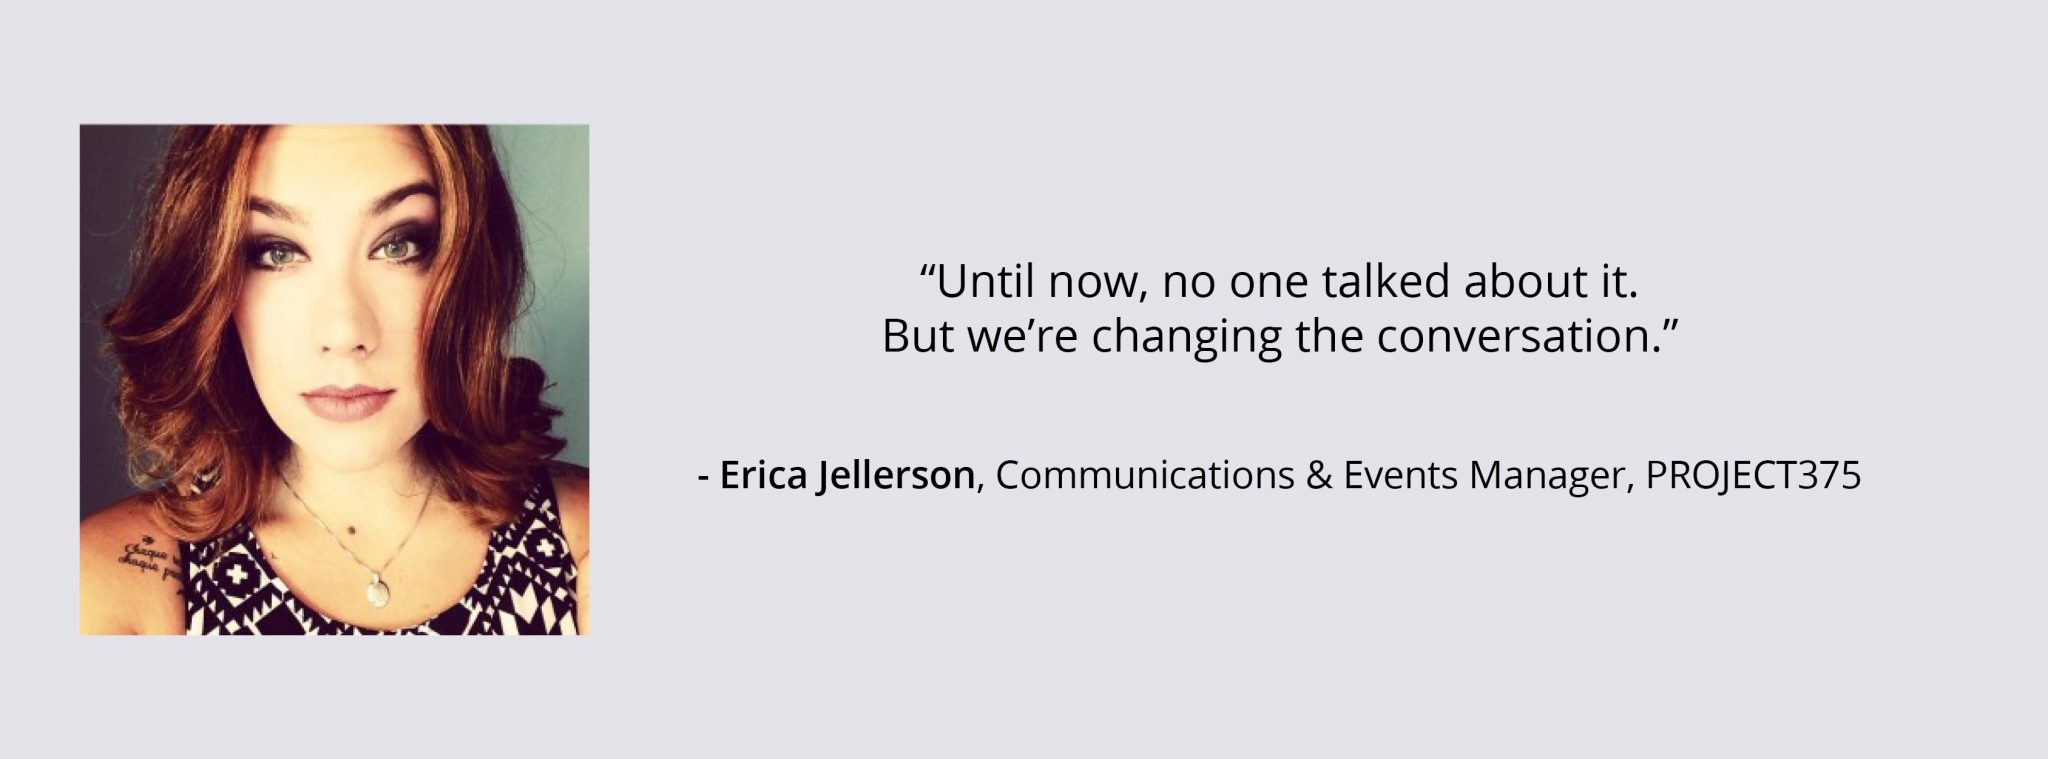 "Erica-Jellerson Photo and Quote: """"Until now, no one talked about it.But we're changing the conversation."""